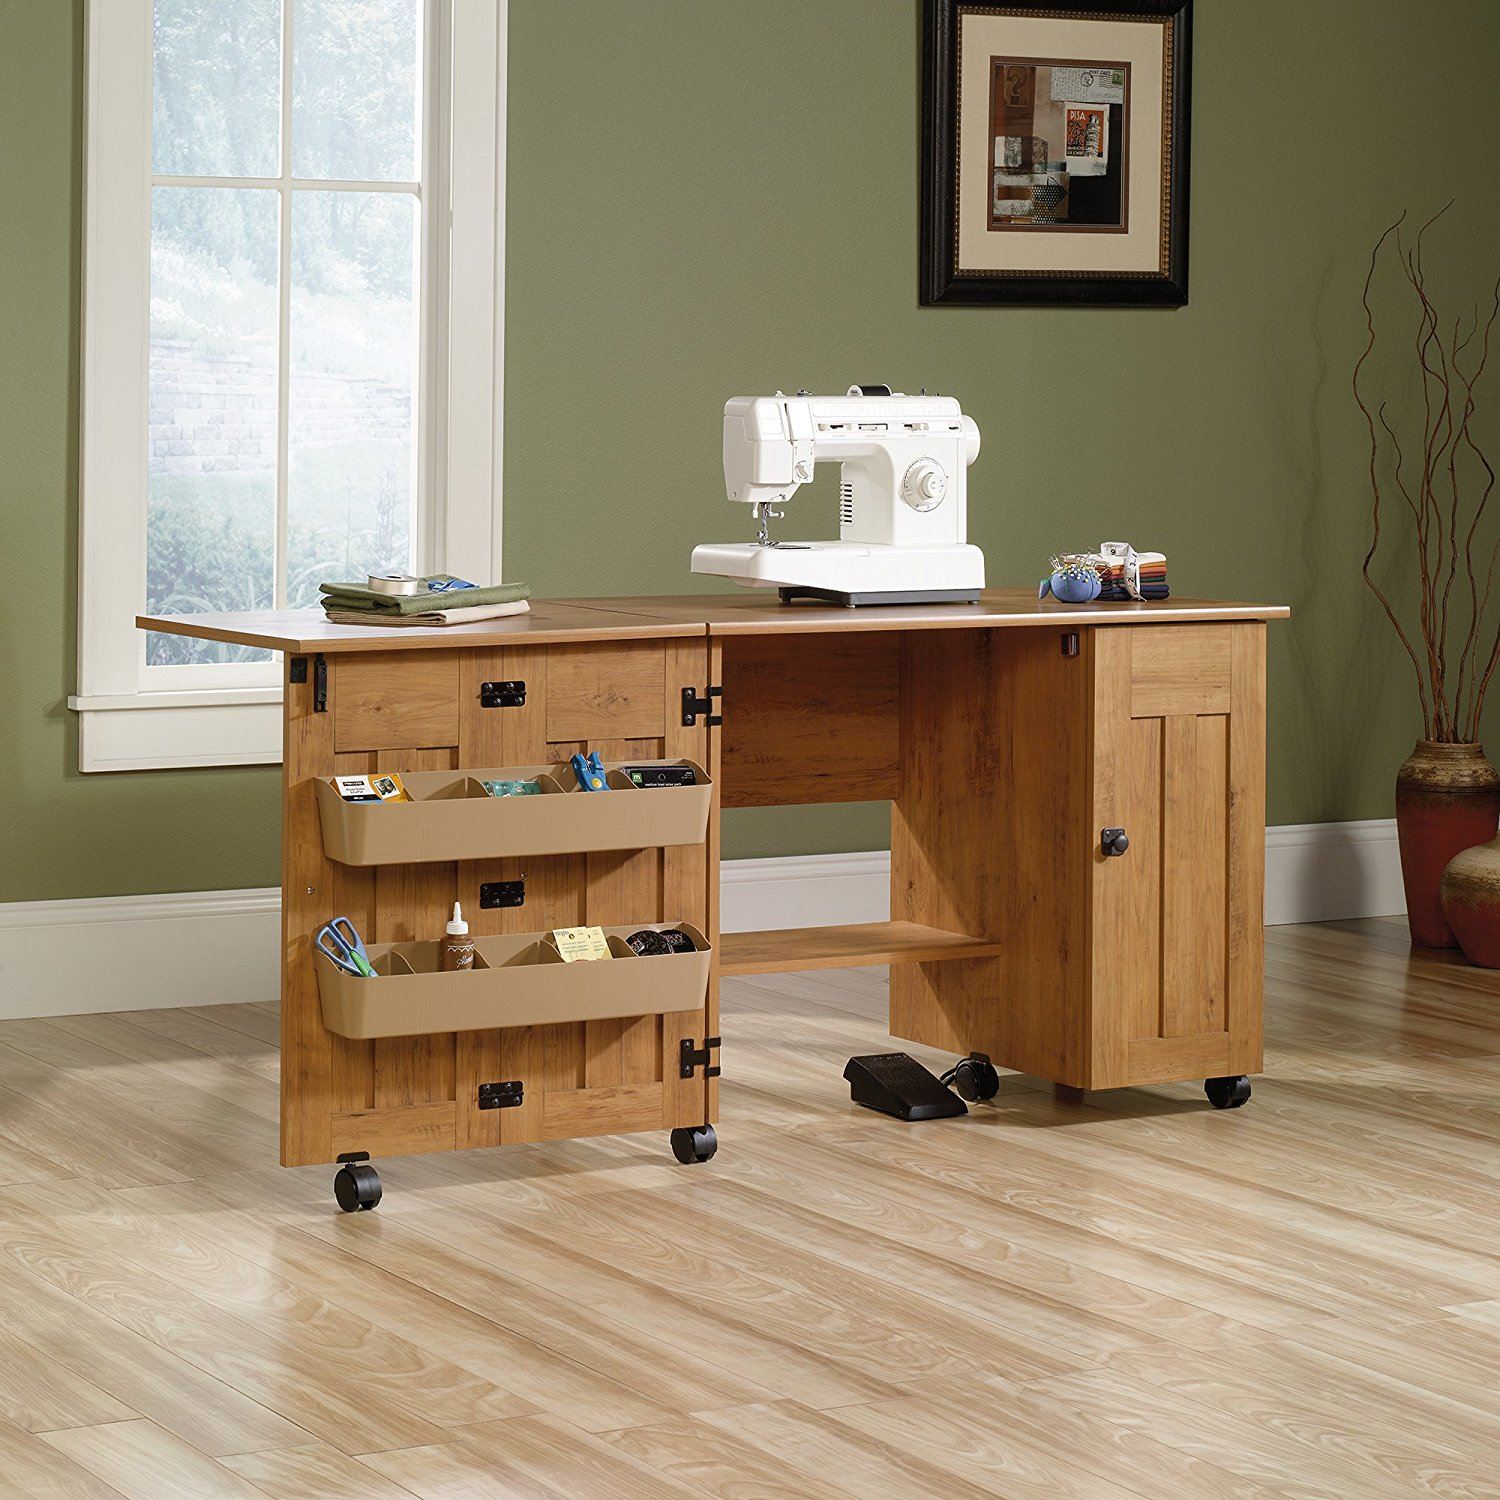 Sewing Machine Cabinets And Tables Table Ideas chanenmeilutheran